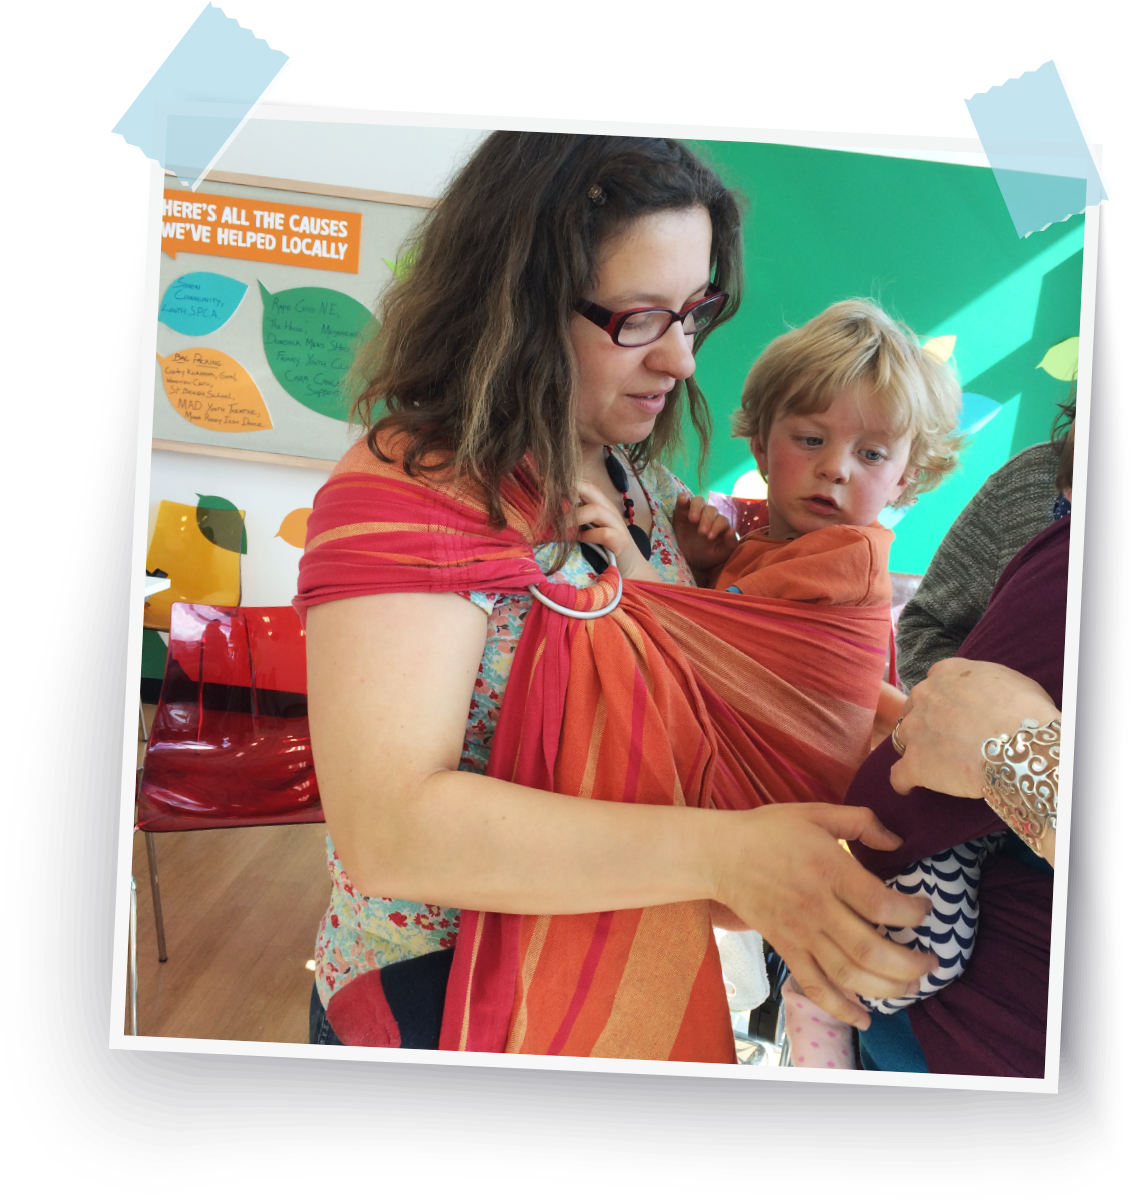 Ina carrying her toddler in a ring sling